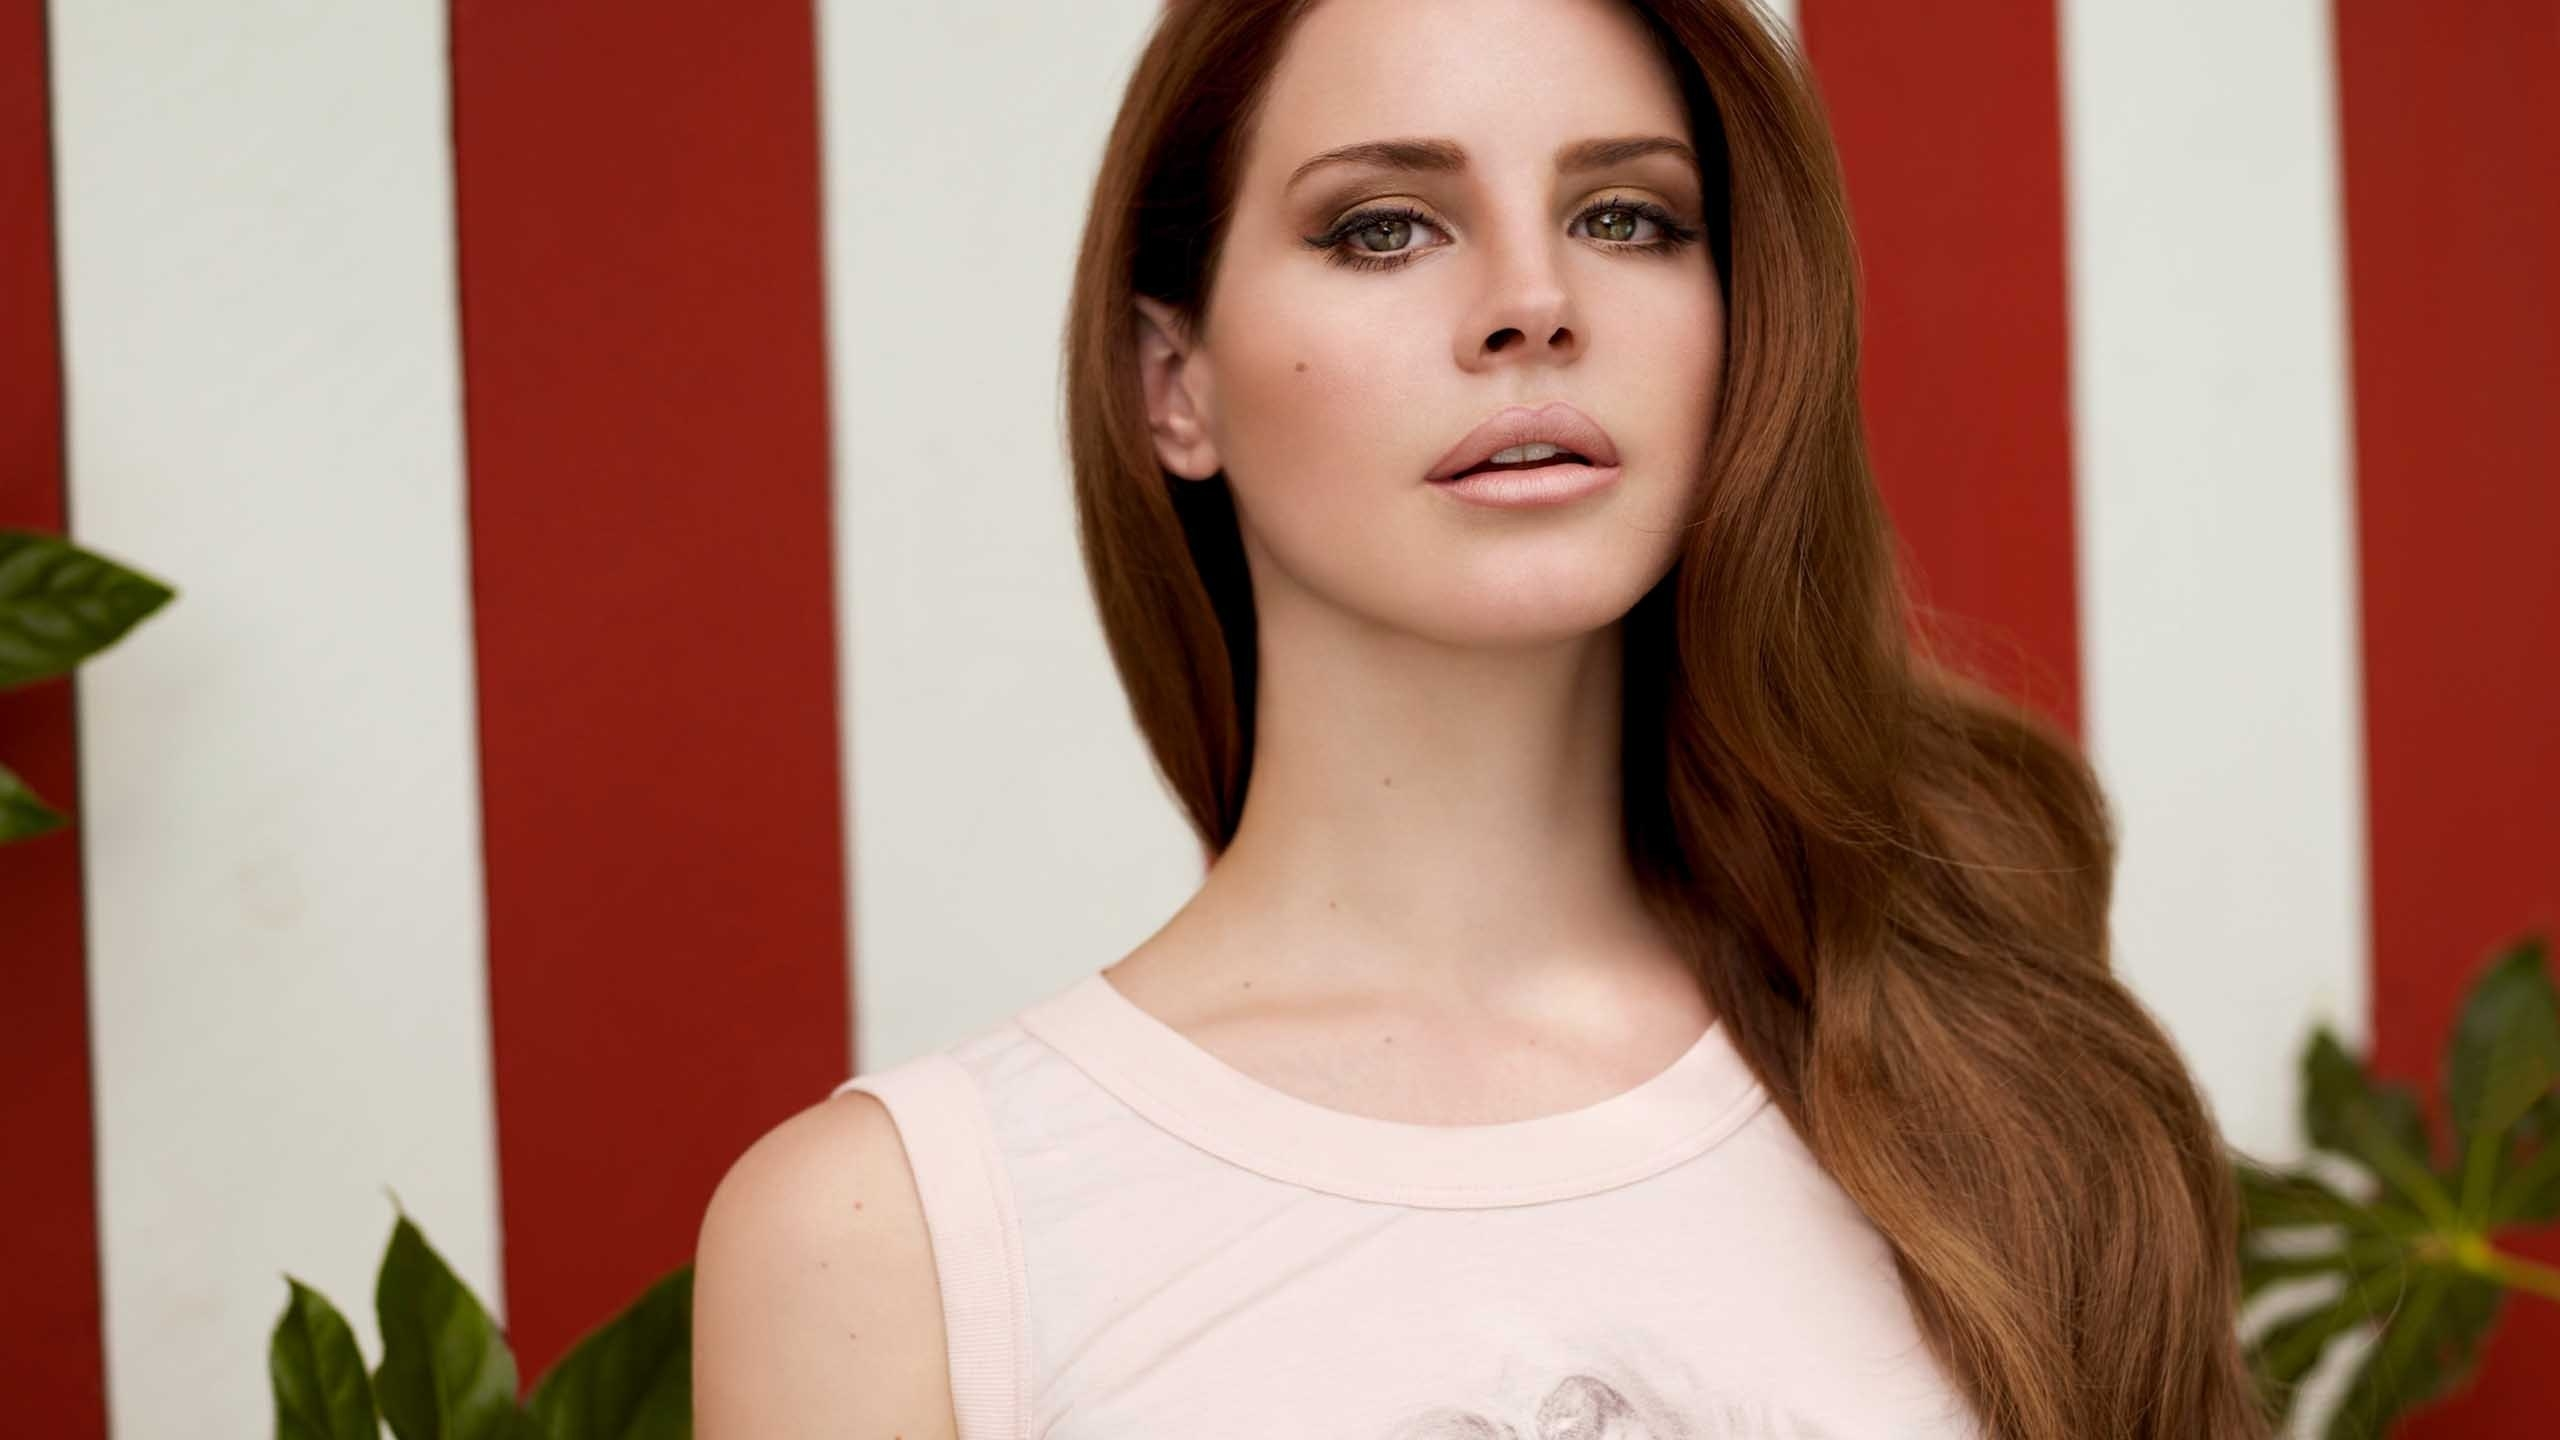 Gorgeous Lana Del Rey Hd Wallpaper Wallpaperfx